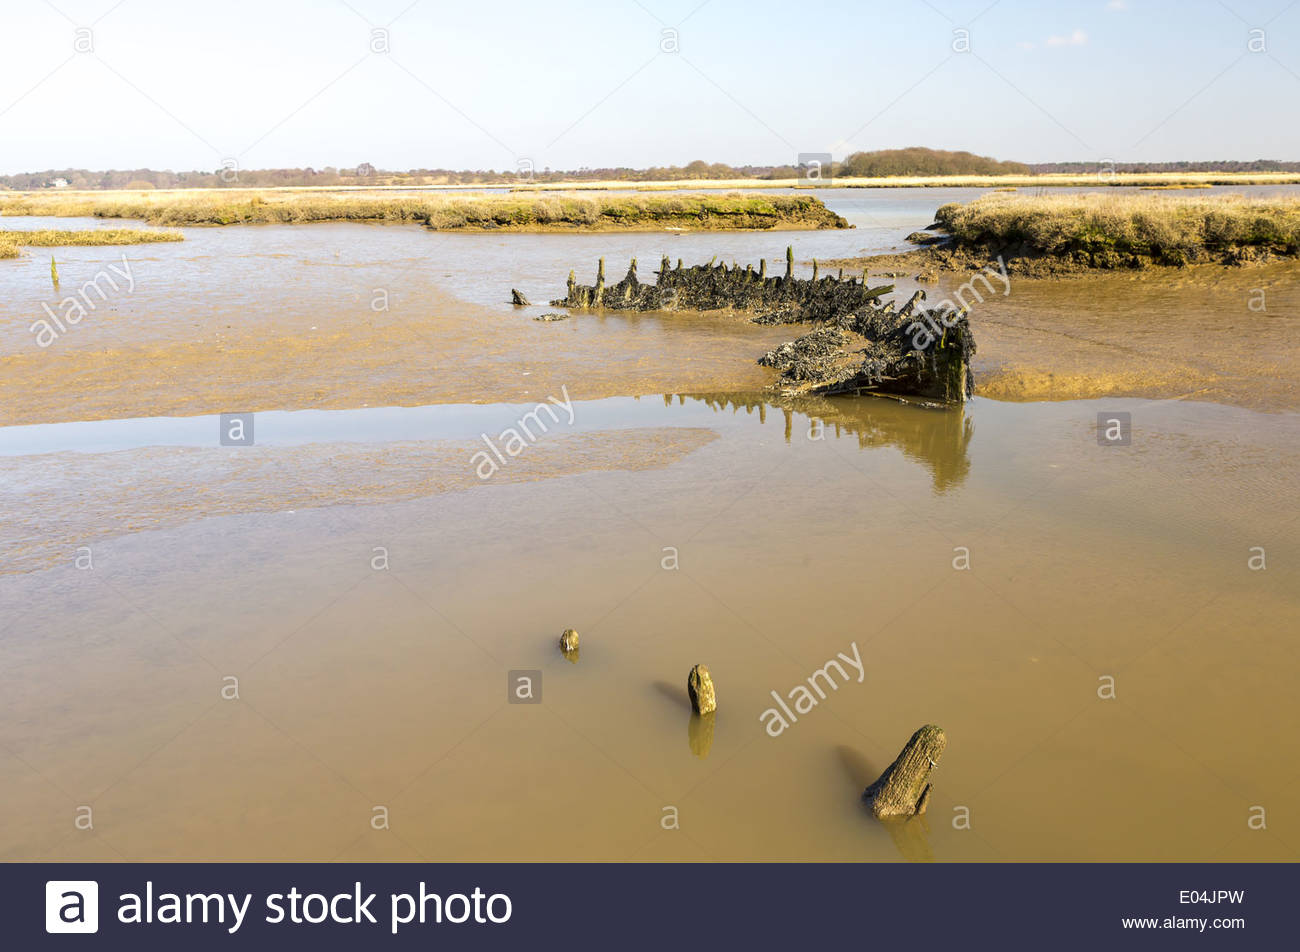 old timbers from a rotten hull pierce the river surface, Snape Maltings and Marshes, near Aldeburgh, Suffolk, England, UK - Stock Image